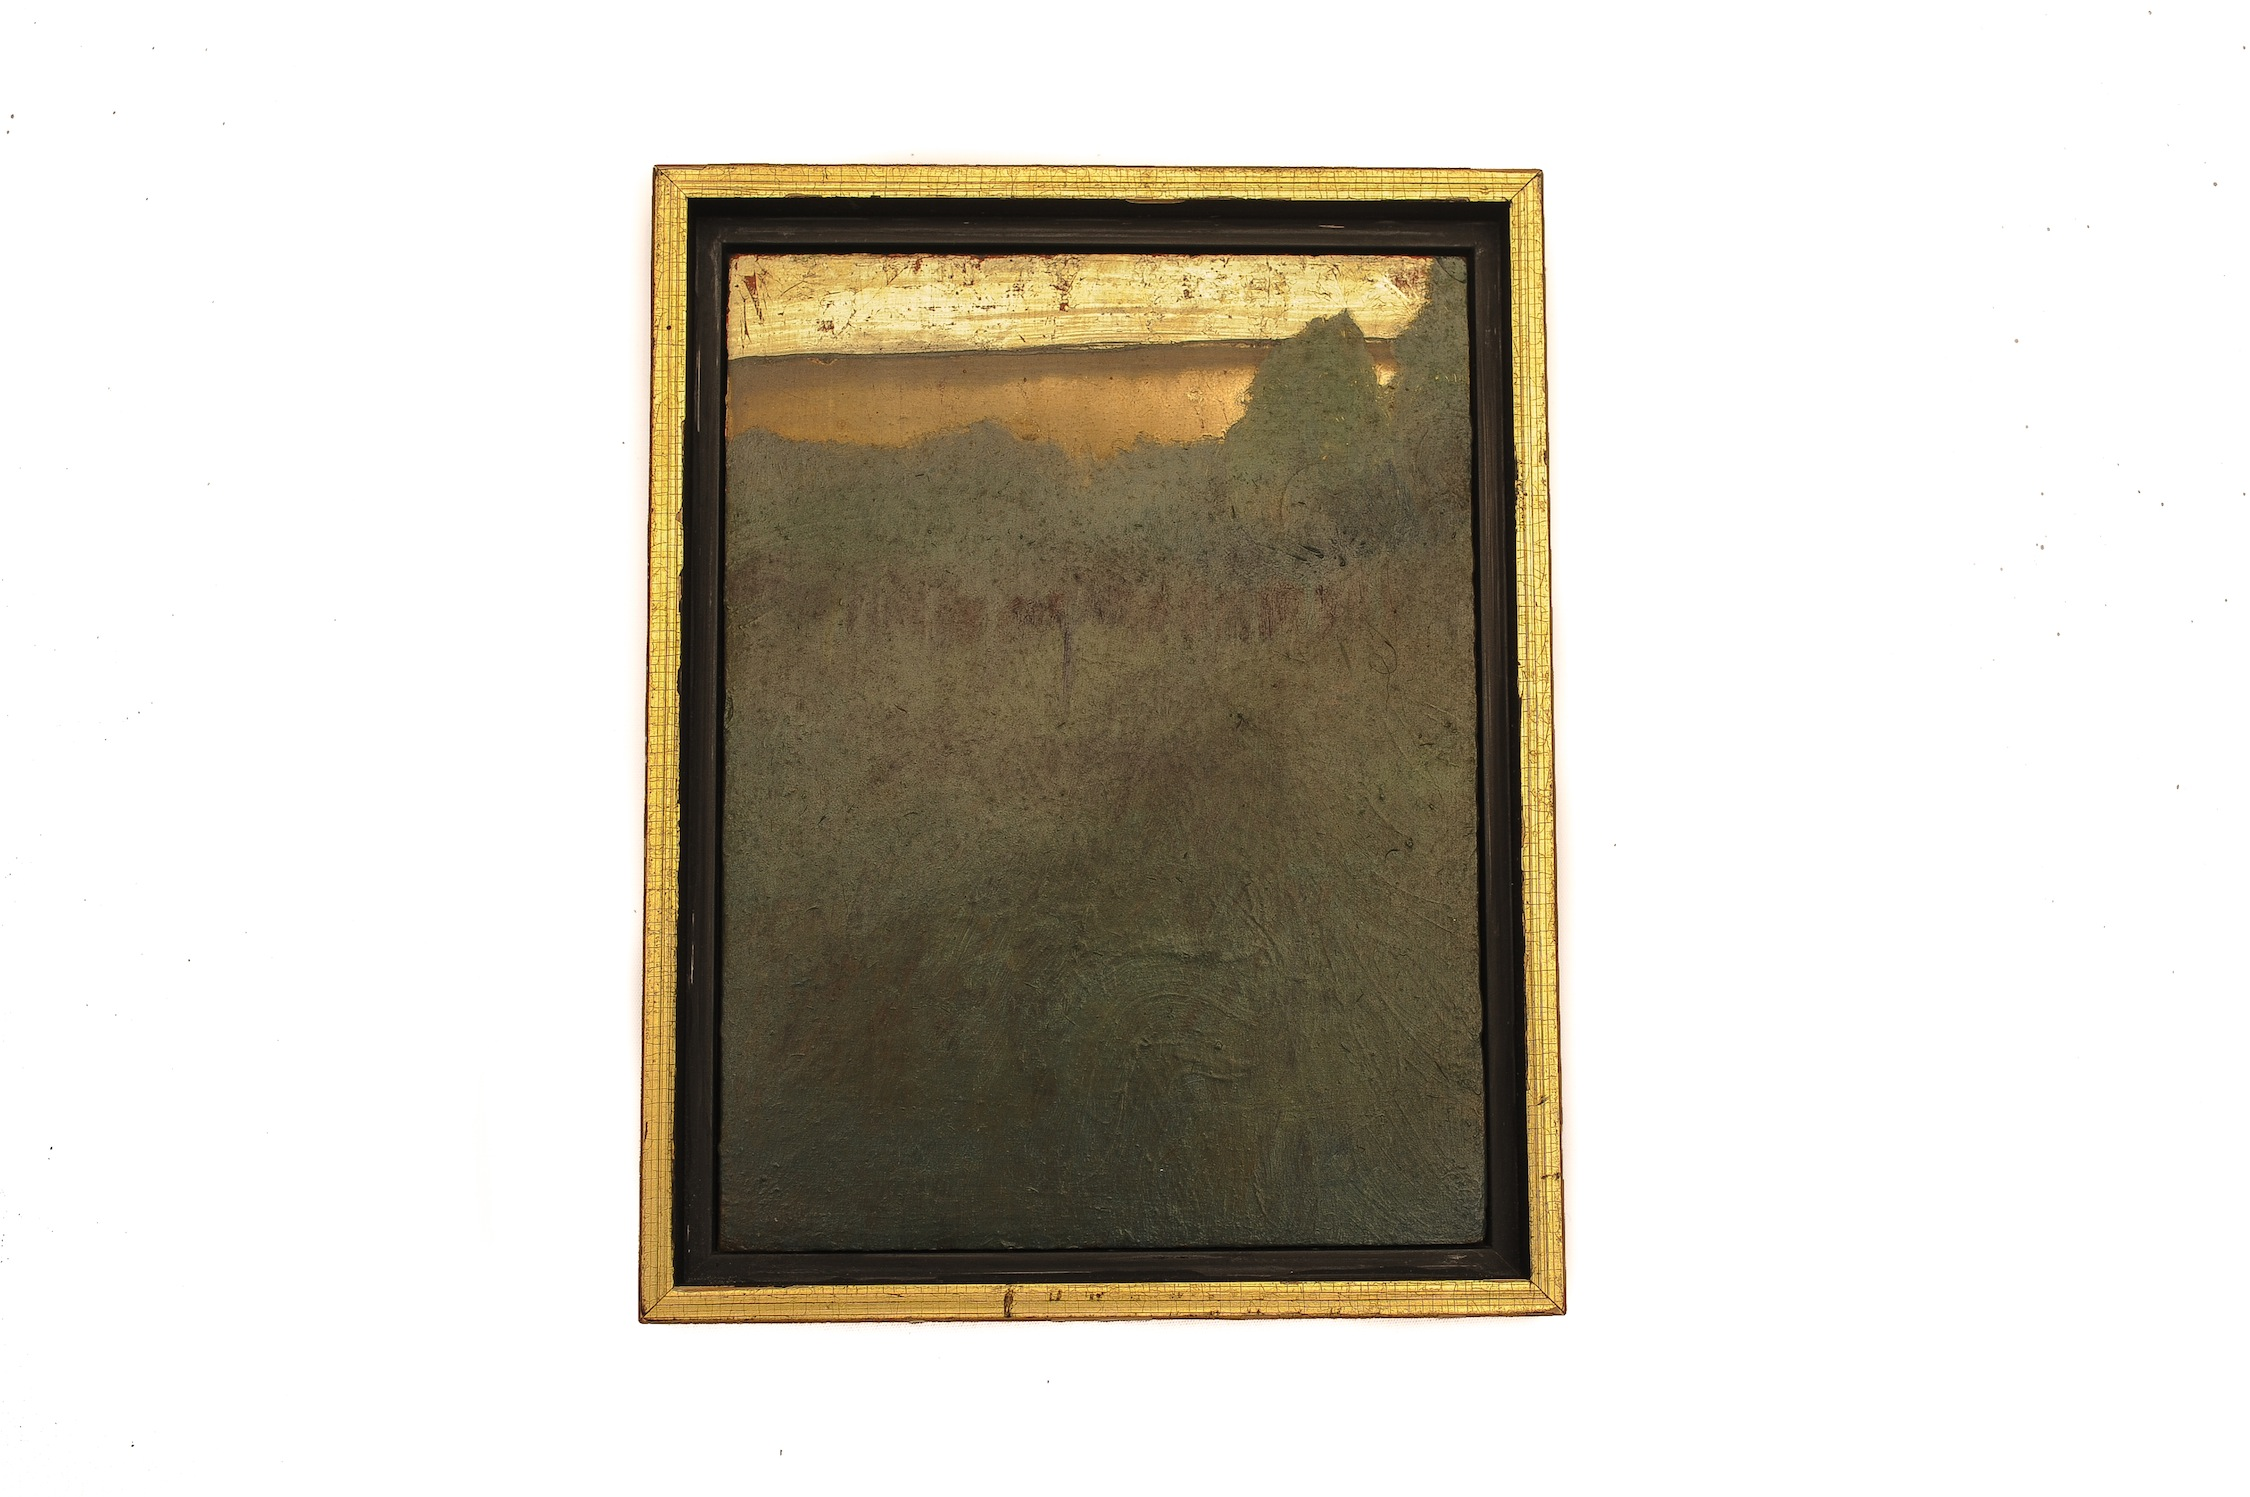 Primitive-Gilded-Painting-SOLD-copy-21.jpg